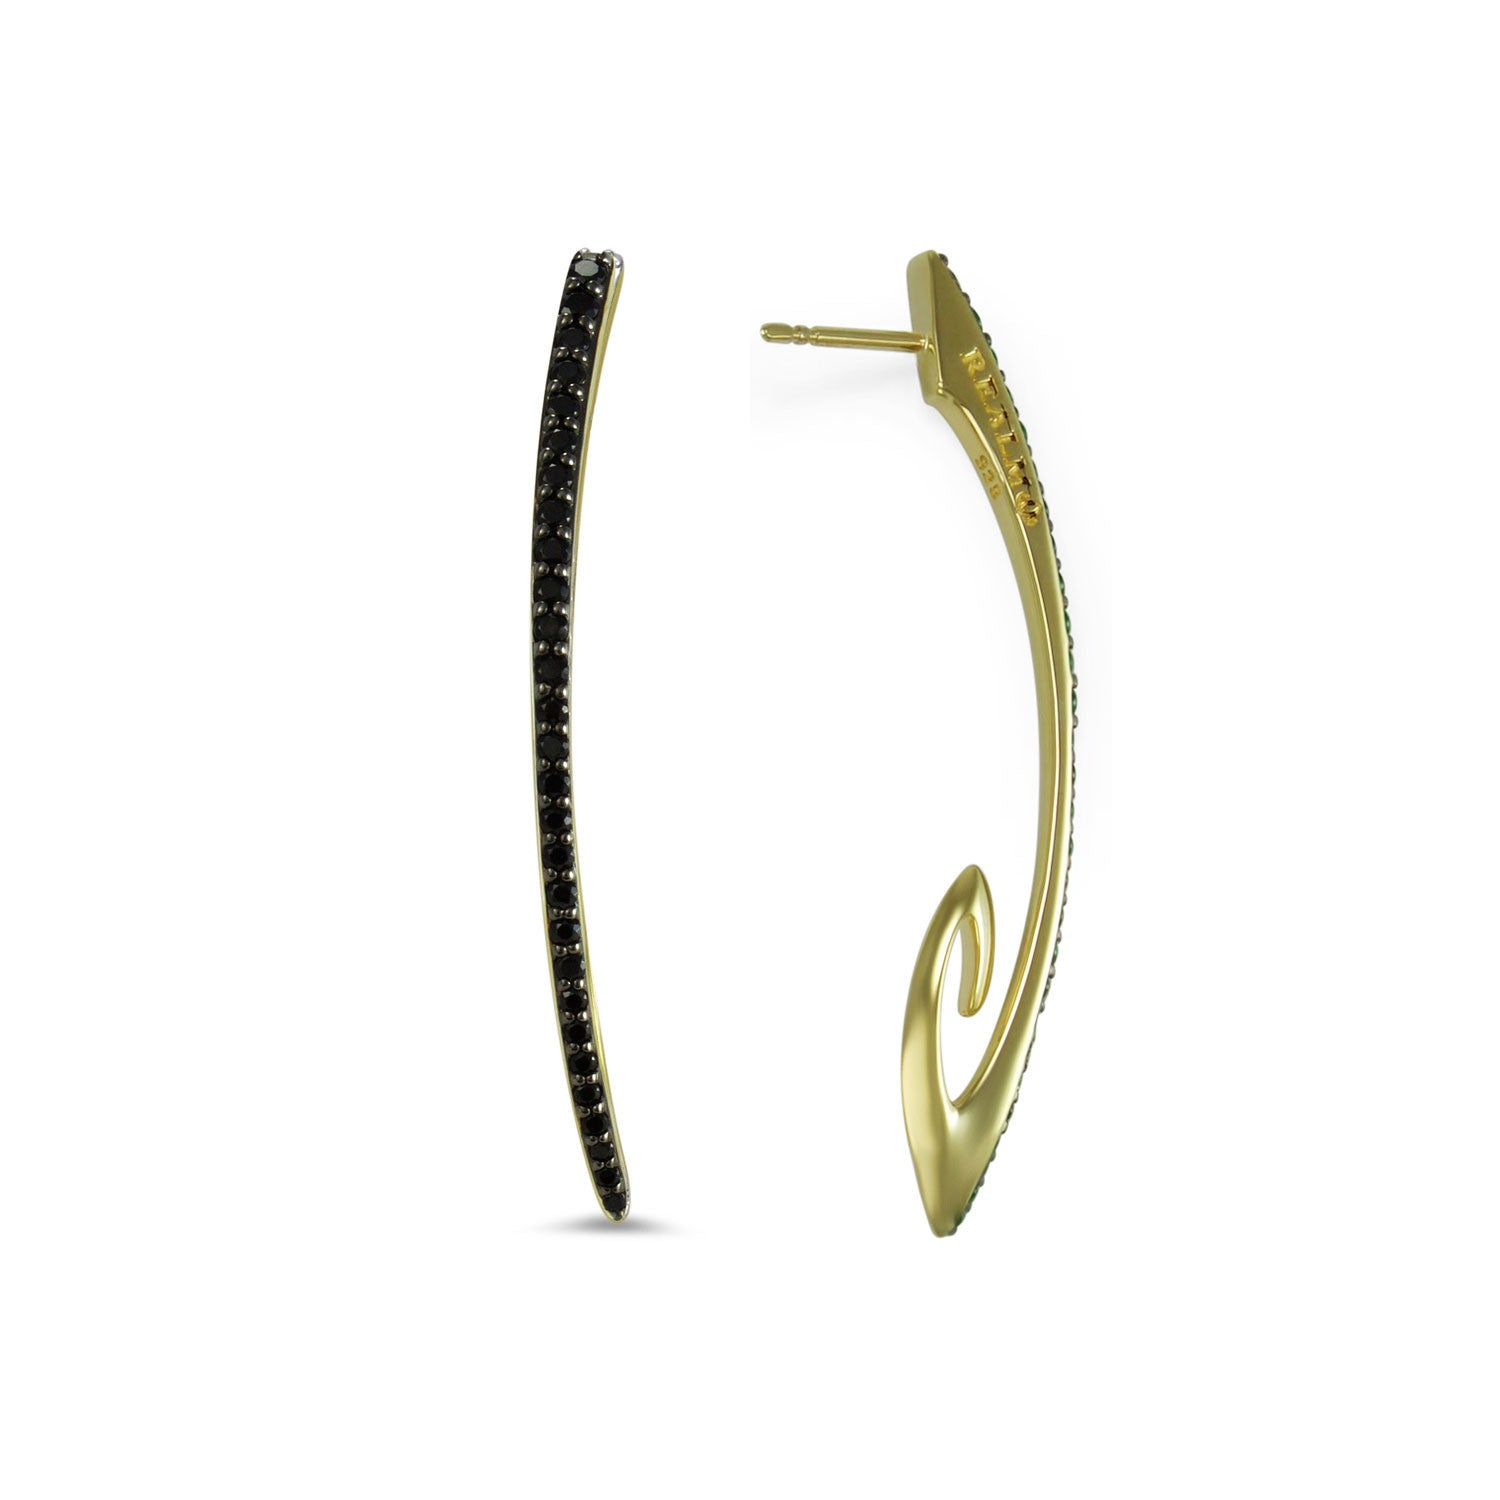 Realm Sceptre Linea Luxe Exclamation Earring BRG2K